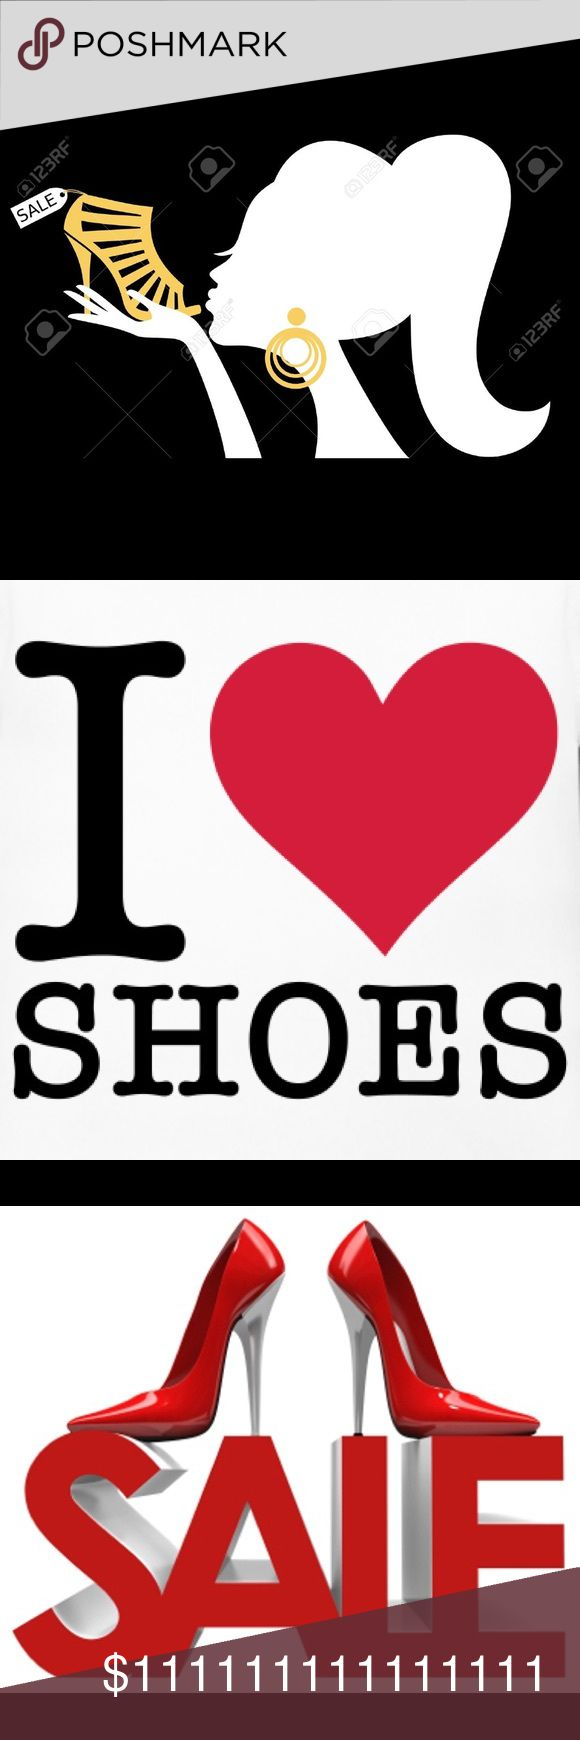 👠👠👠Shoe SALE👠👠👠 💋SHOE SALE💋- Most are Brand New Never Worn! Accepting Reasonable Offers💋 Shoes